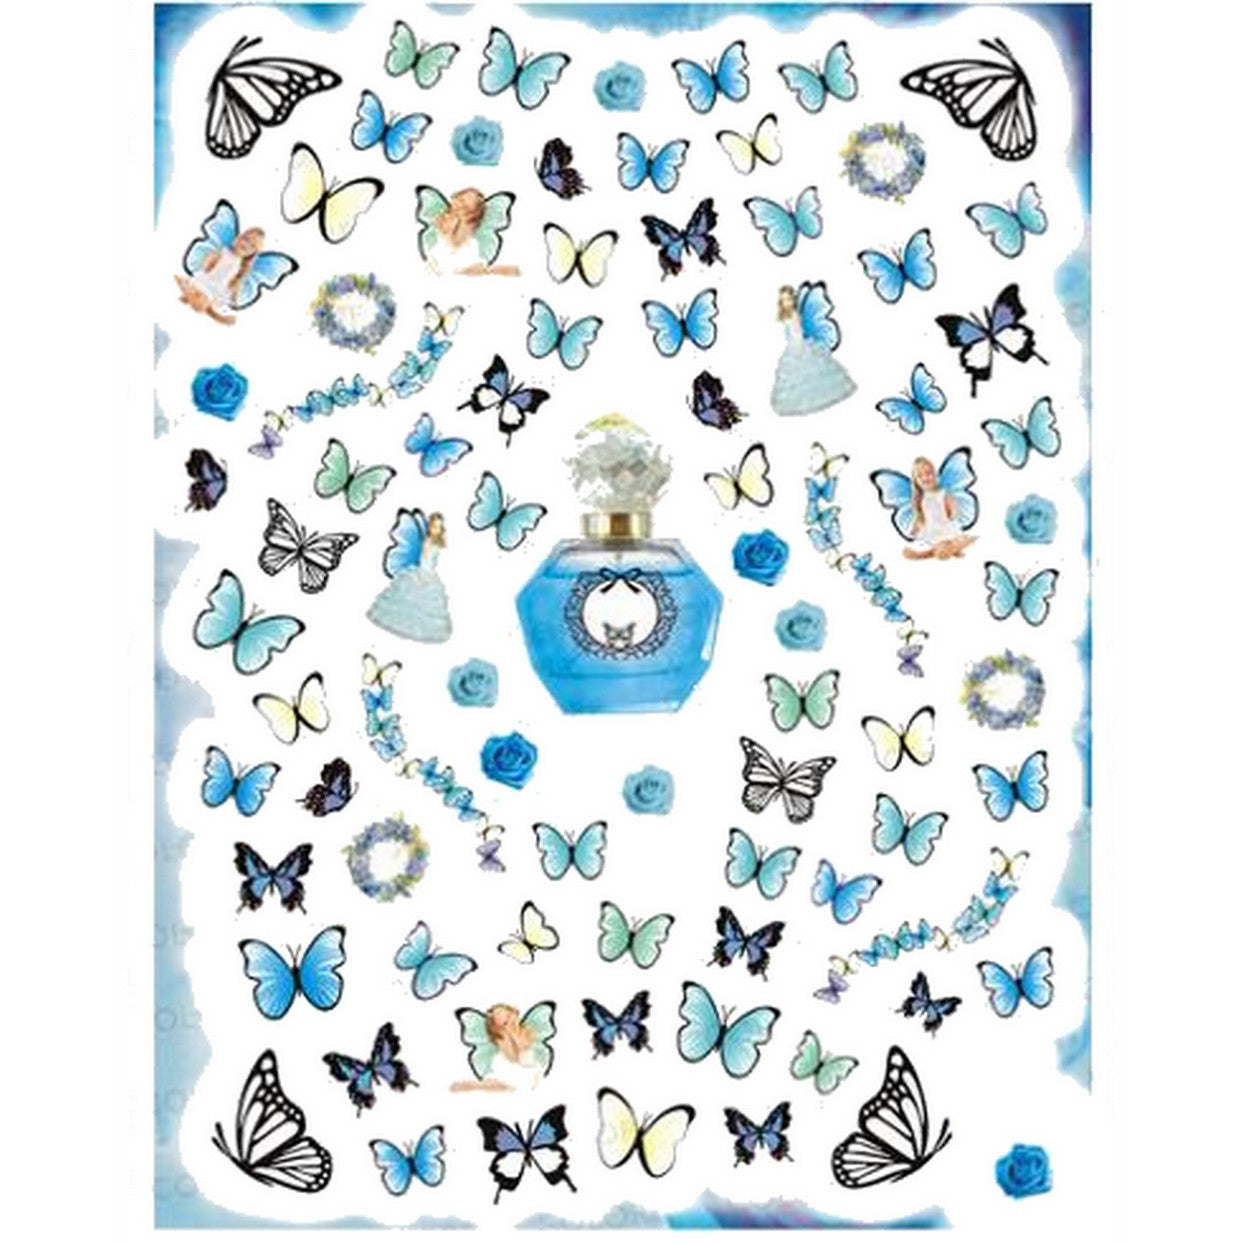 Butterflies Blue Fairy Mix Nail Stickers